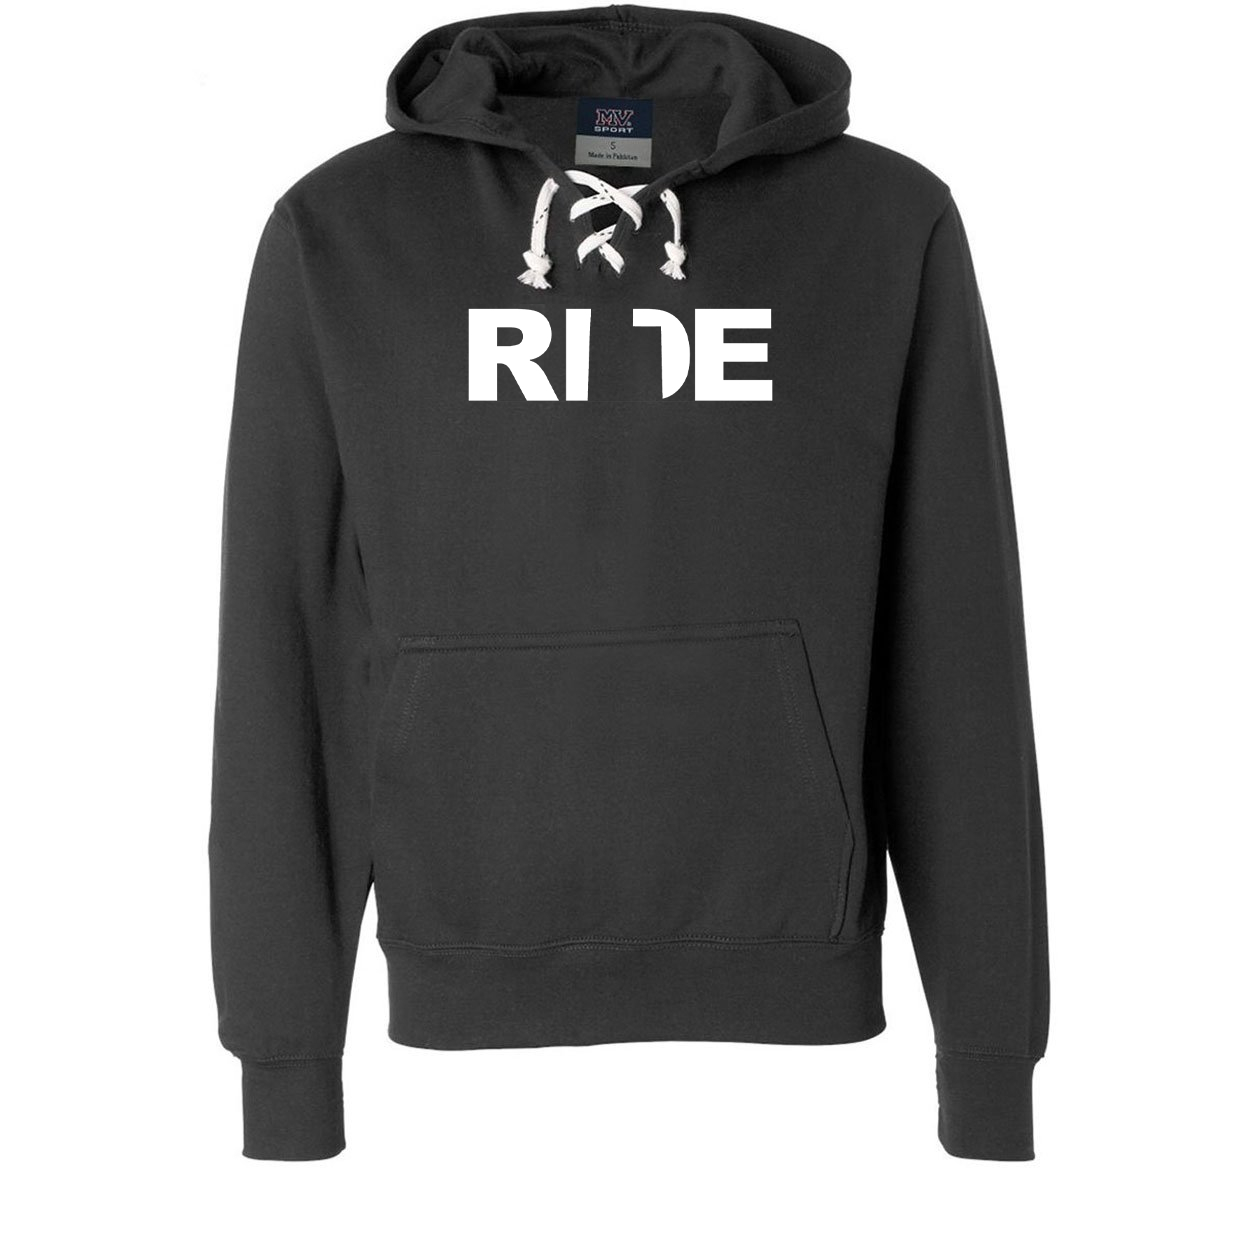 Ride Utah Classic Unisex Premium Hockey Sweatshirt Black (White Logo)